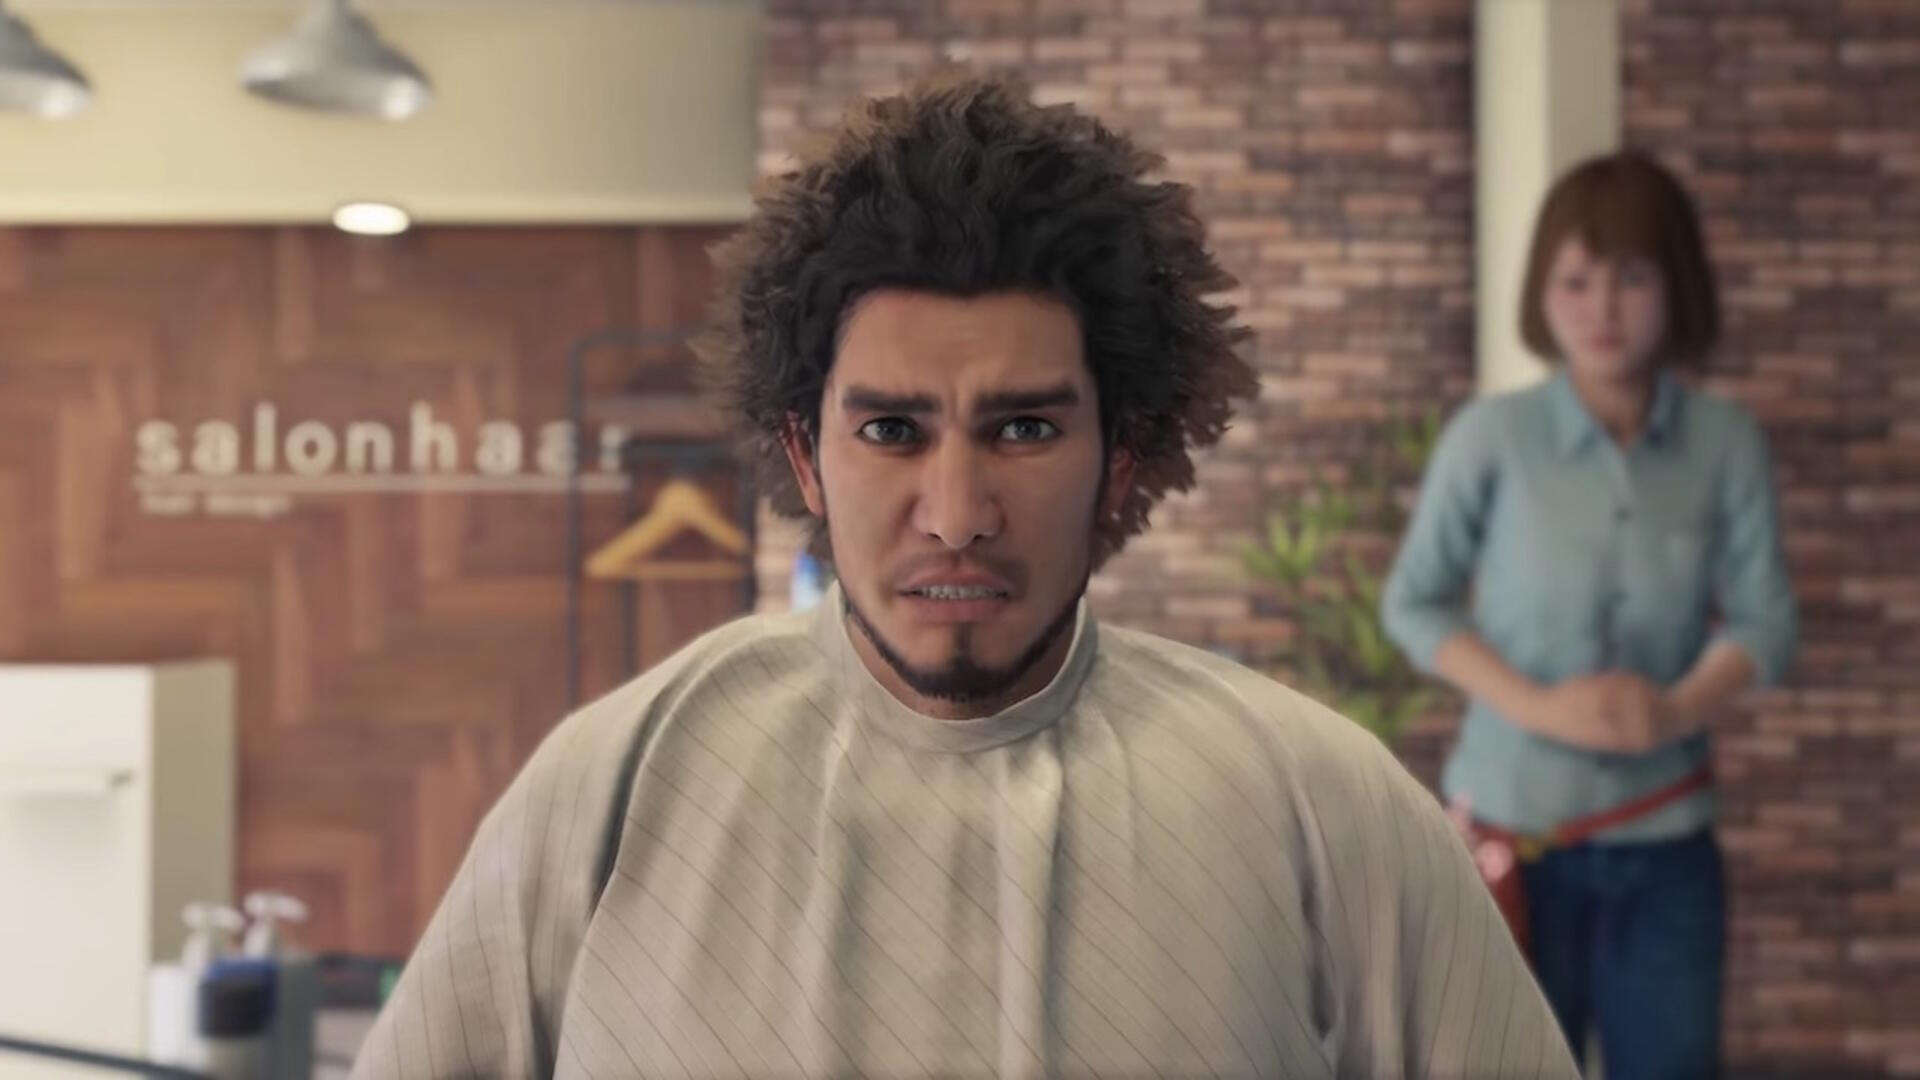 Yakuza 7 Will Be Longer Than Previous Games, Has More RPG Elements Than Turn-Based Combat